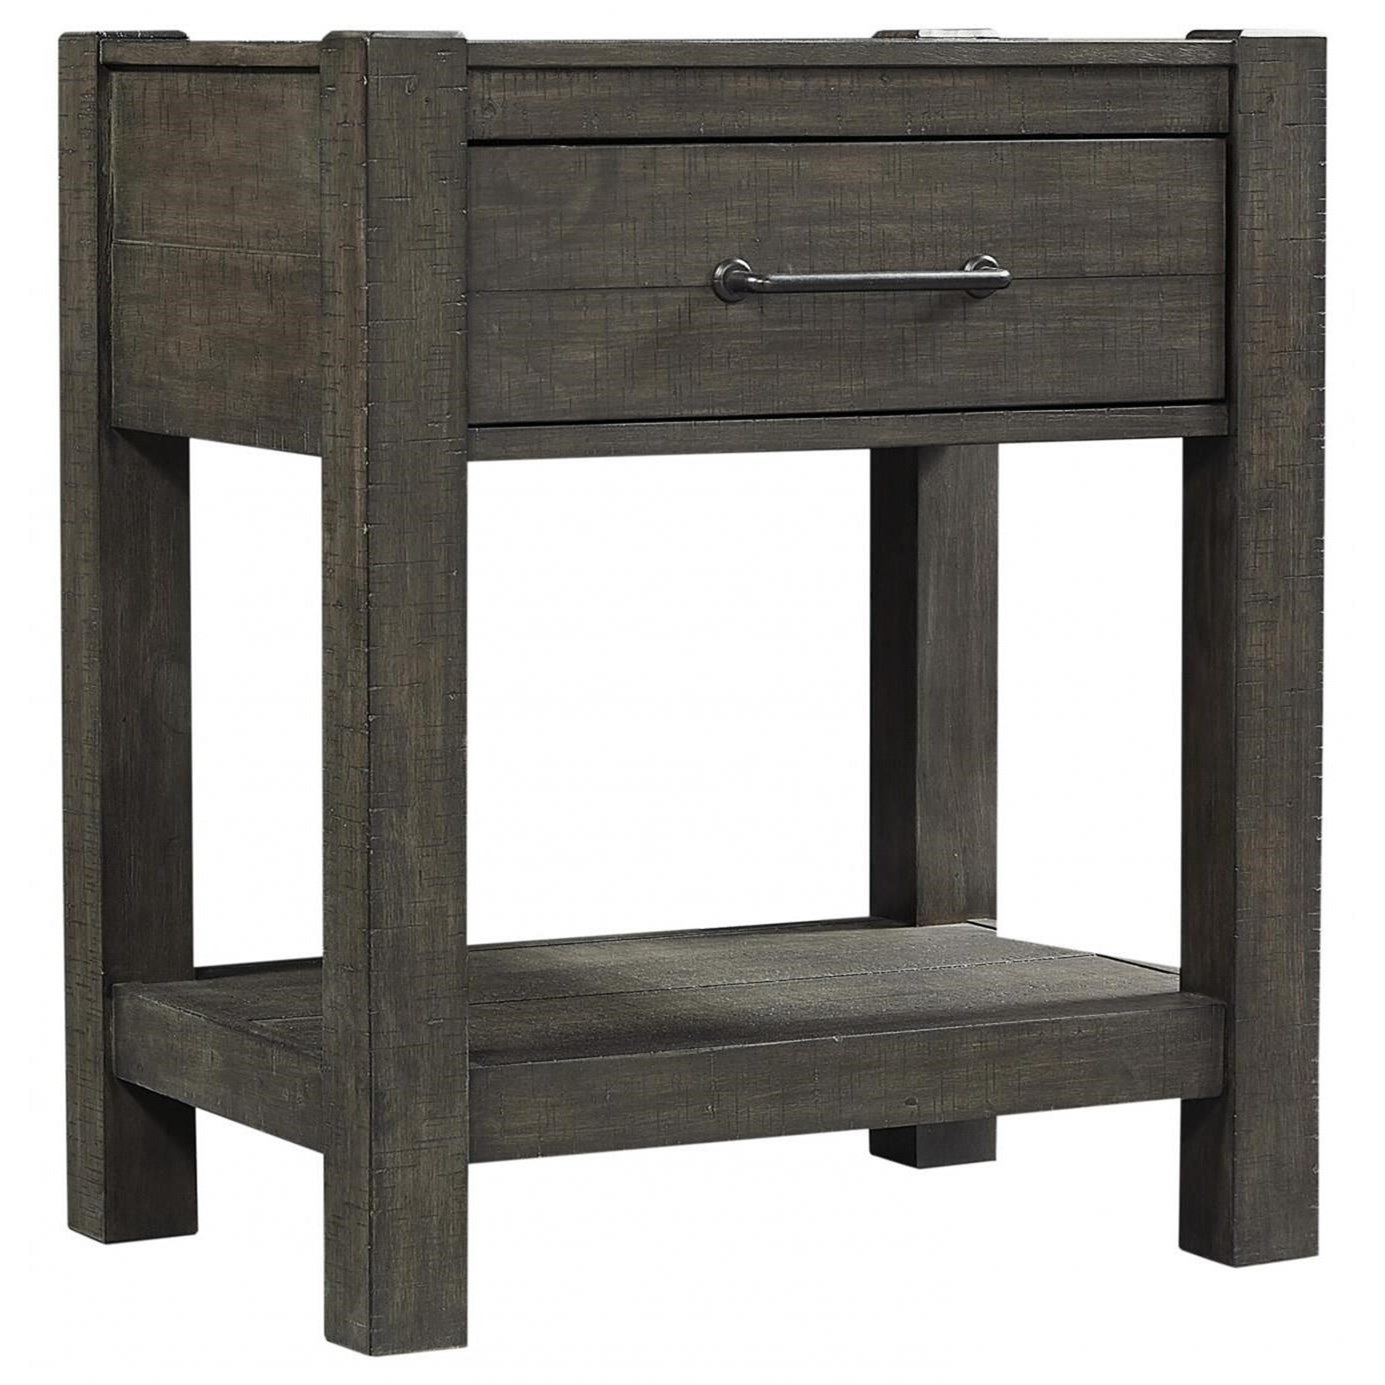 Mill Creek 1 Drawer Nightstand by Aspenhome at Stoney Creek Furniture